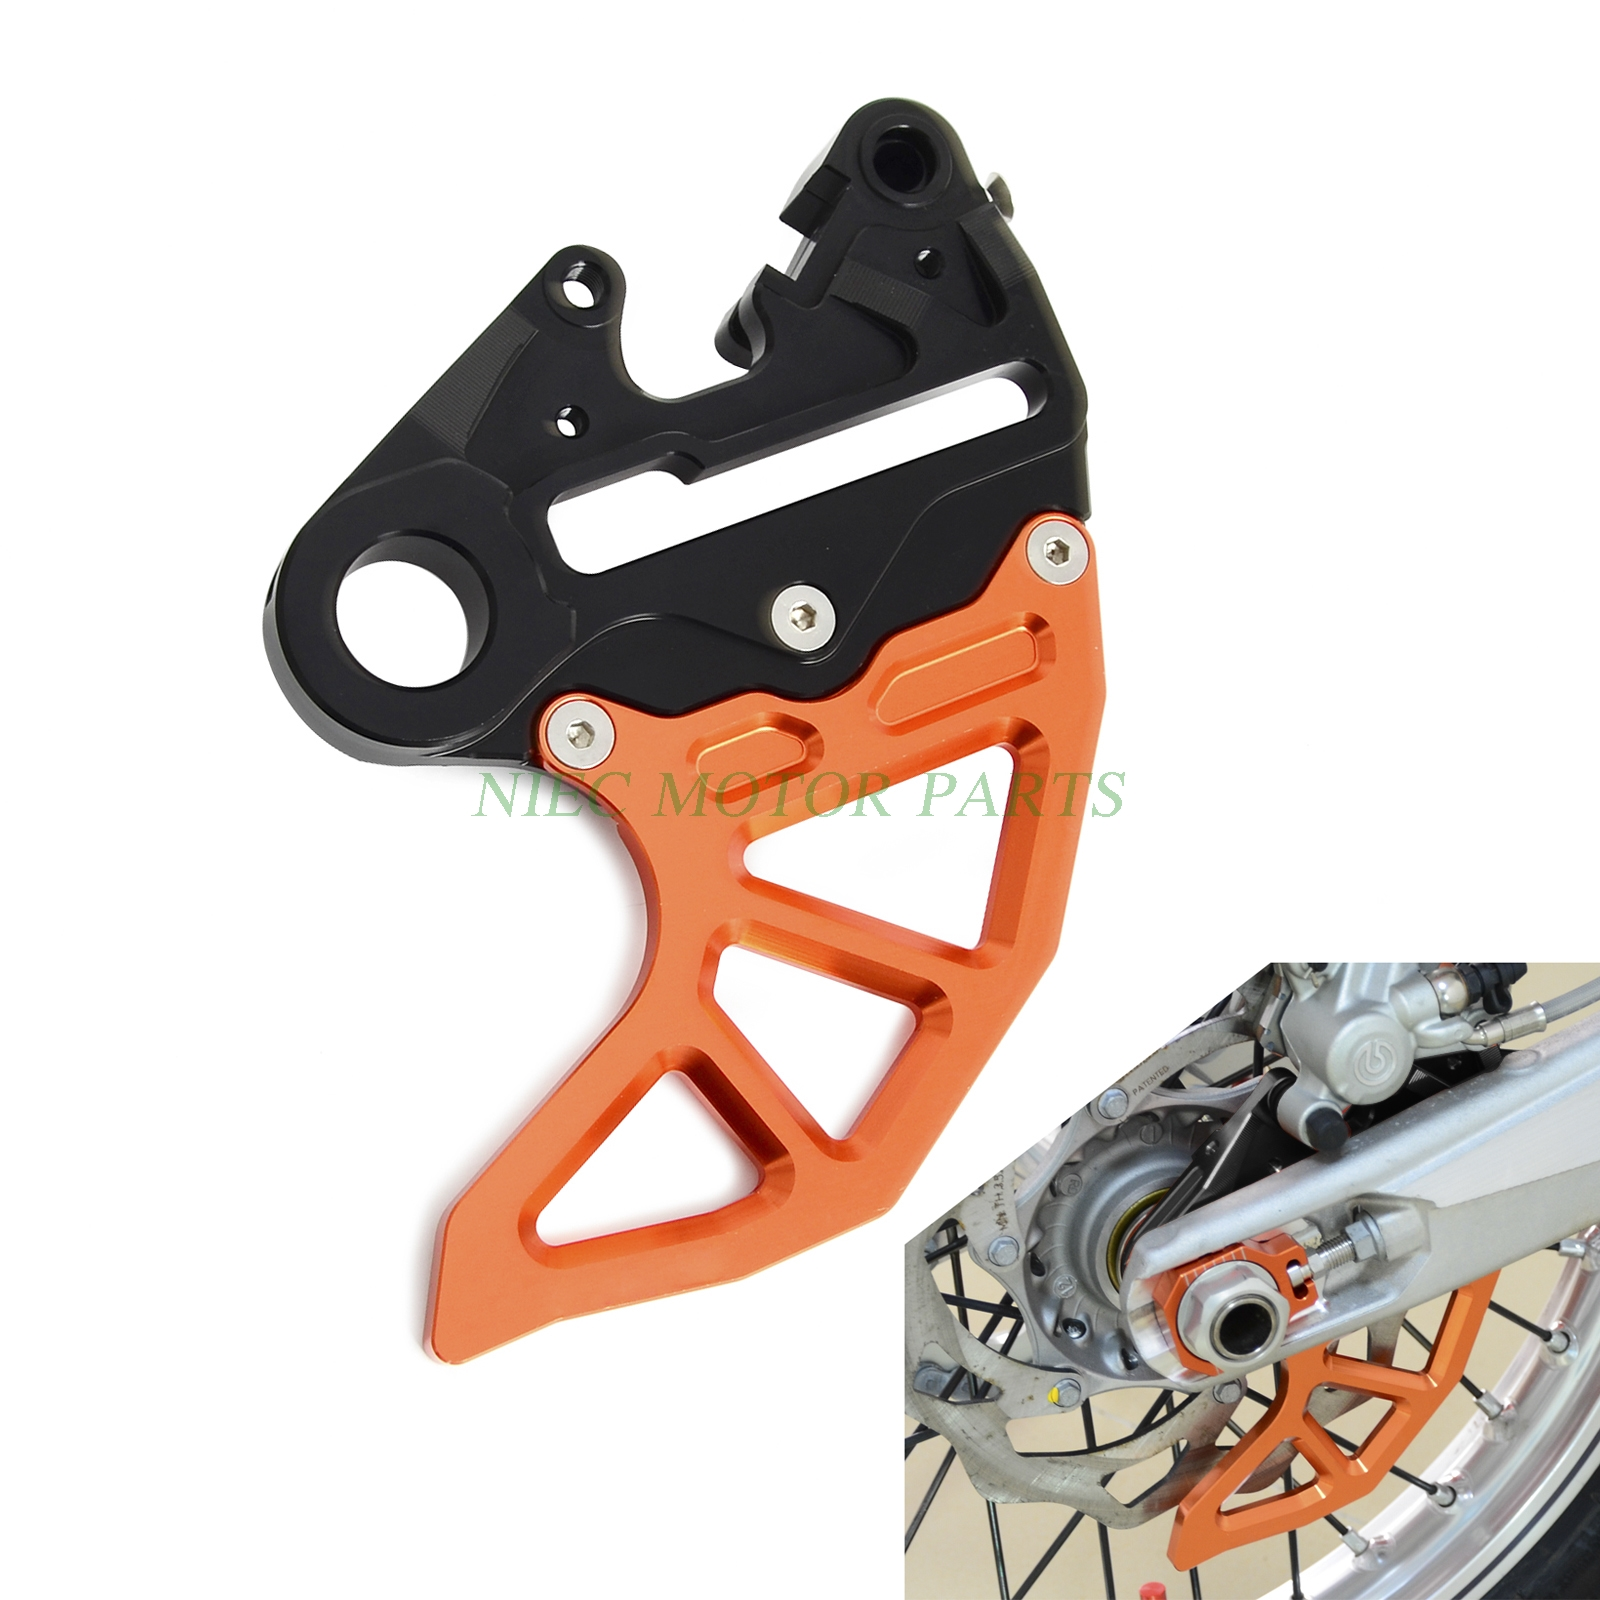 Billet CNC Rear Brake Disc Guard W/ Caliper Bracket for KTM 125-450 SX/SX-F/SMR/XC/XC-F 2013 2014 2015 2016 billet cnc rear brake disc guard w caliper bracket for ktm 125 450 sx sx f smr xc xc f 2013 2014 2015 2016